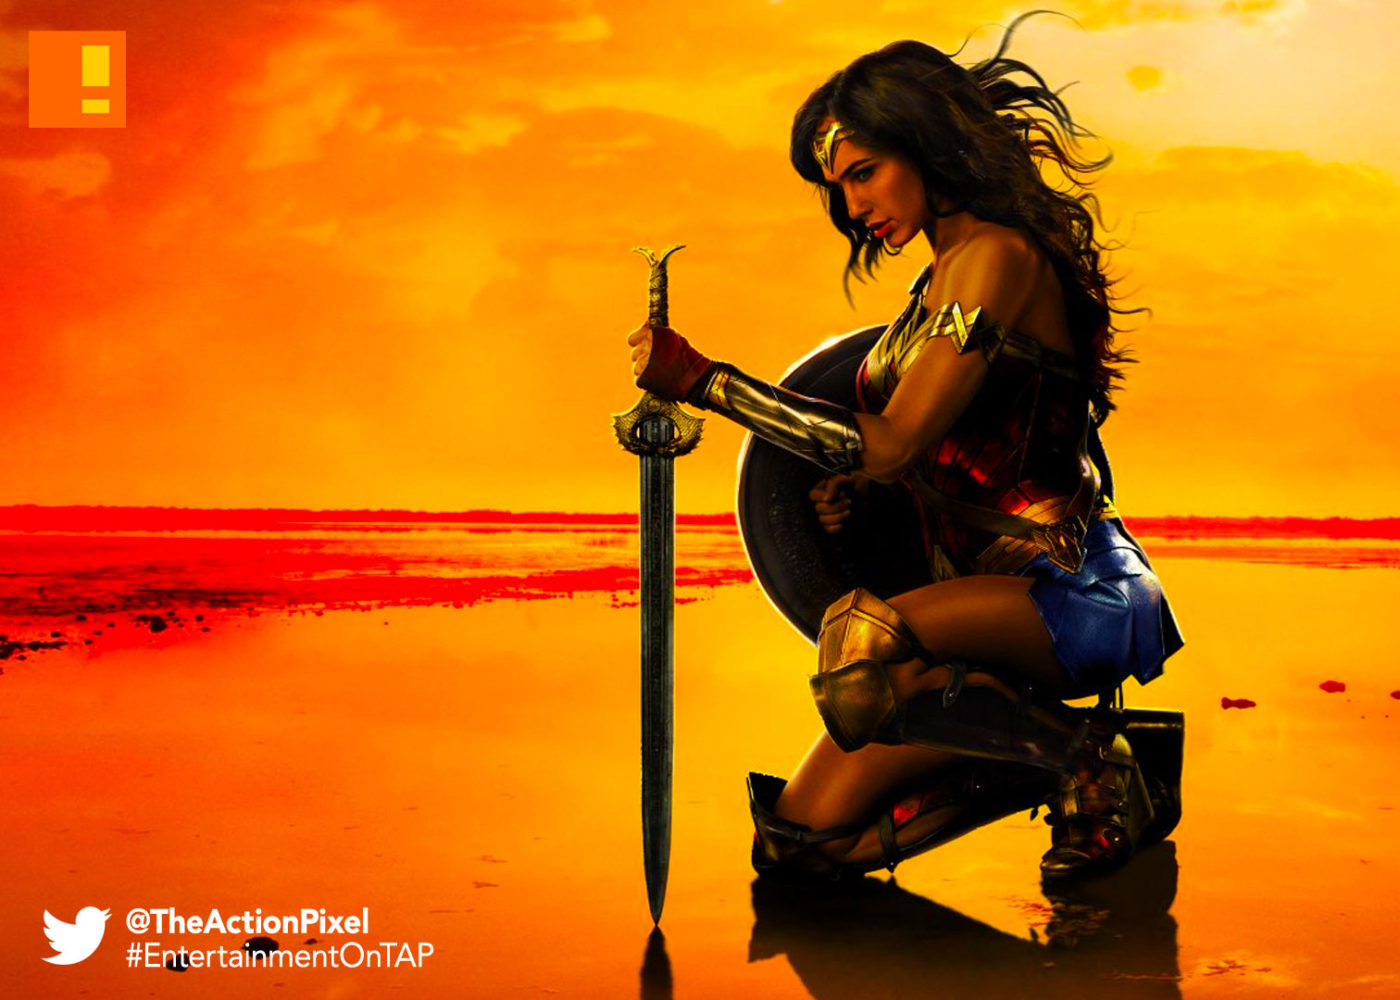 wonder woman,the action pixel, entertainment on tap, wb pictures, warner bros. entertainment , the action pixel, gal gadot, ww,bracelets, poster